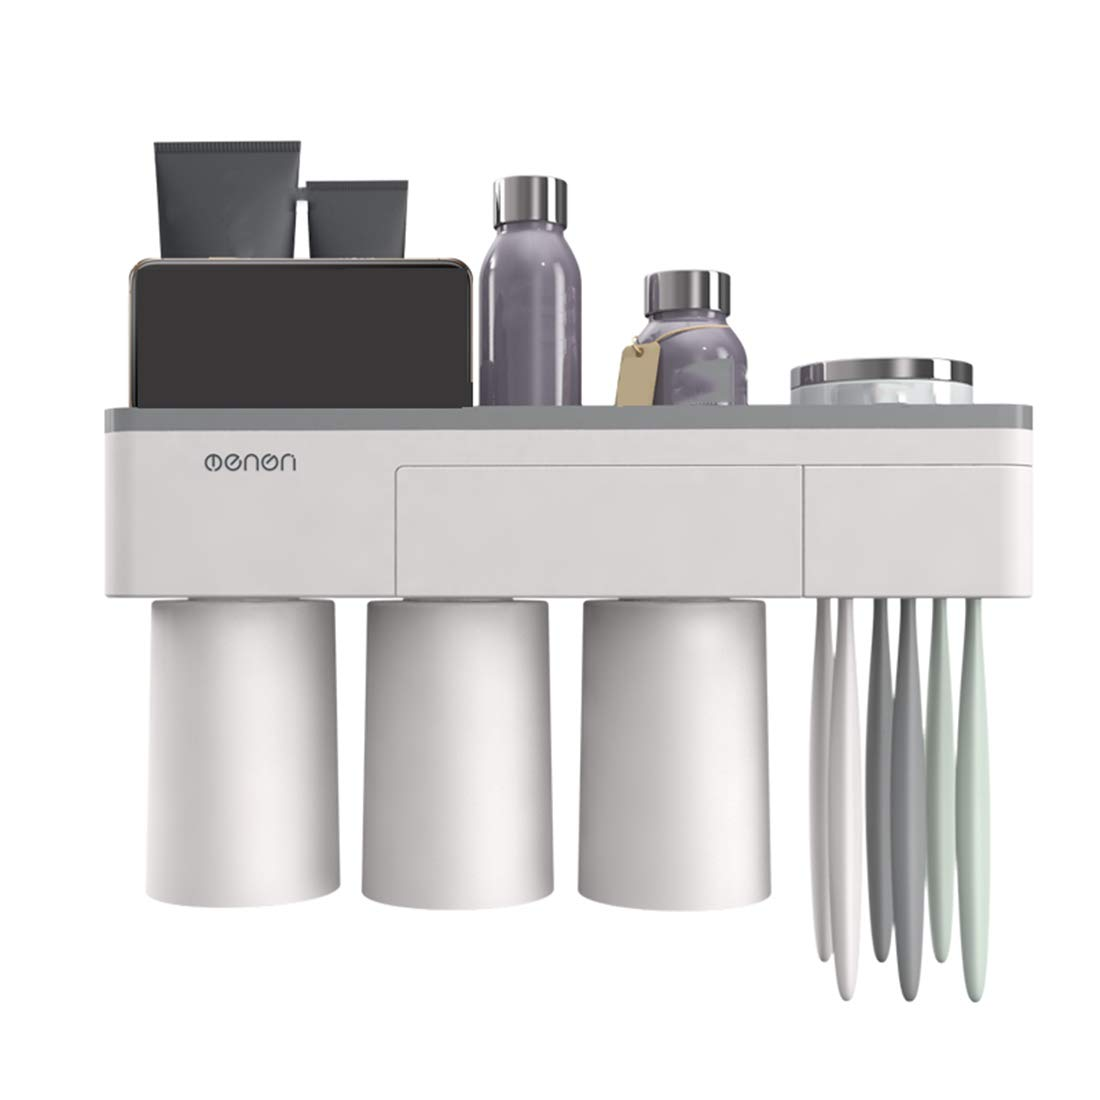 Magnetic Toothbrush Holder Wall Mount Electric Toothbrushes Slots Cosmetic Organizer and Drawer with Phone Holder